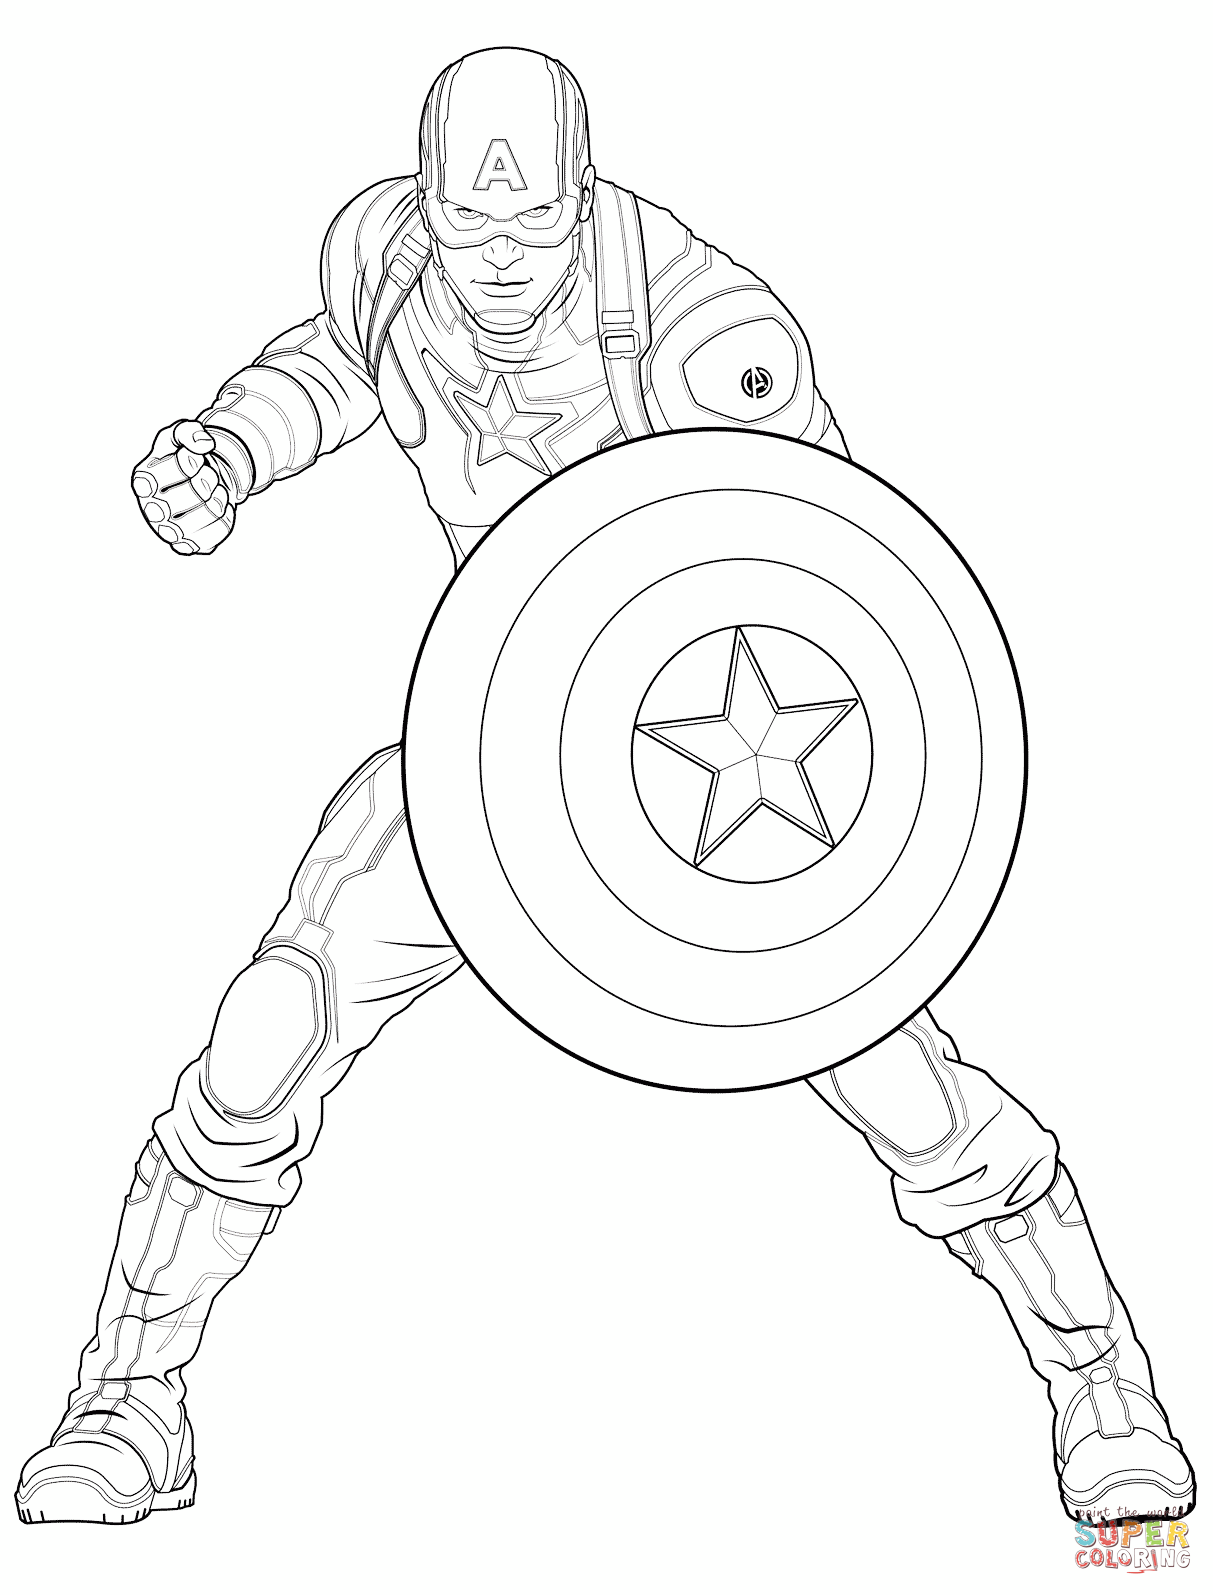 Captain America Coloring Page : captain, america, coloring, Avengers, Captain, America, Coloring, Printable, Pages